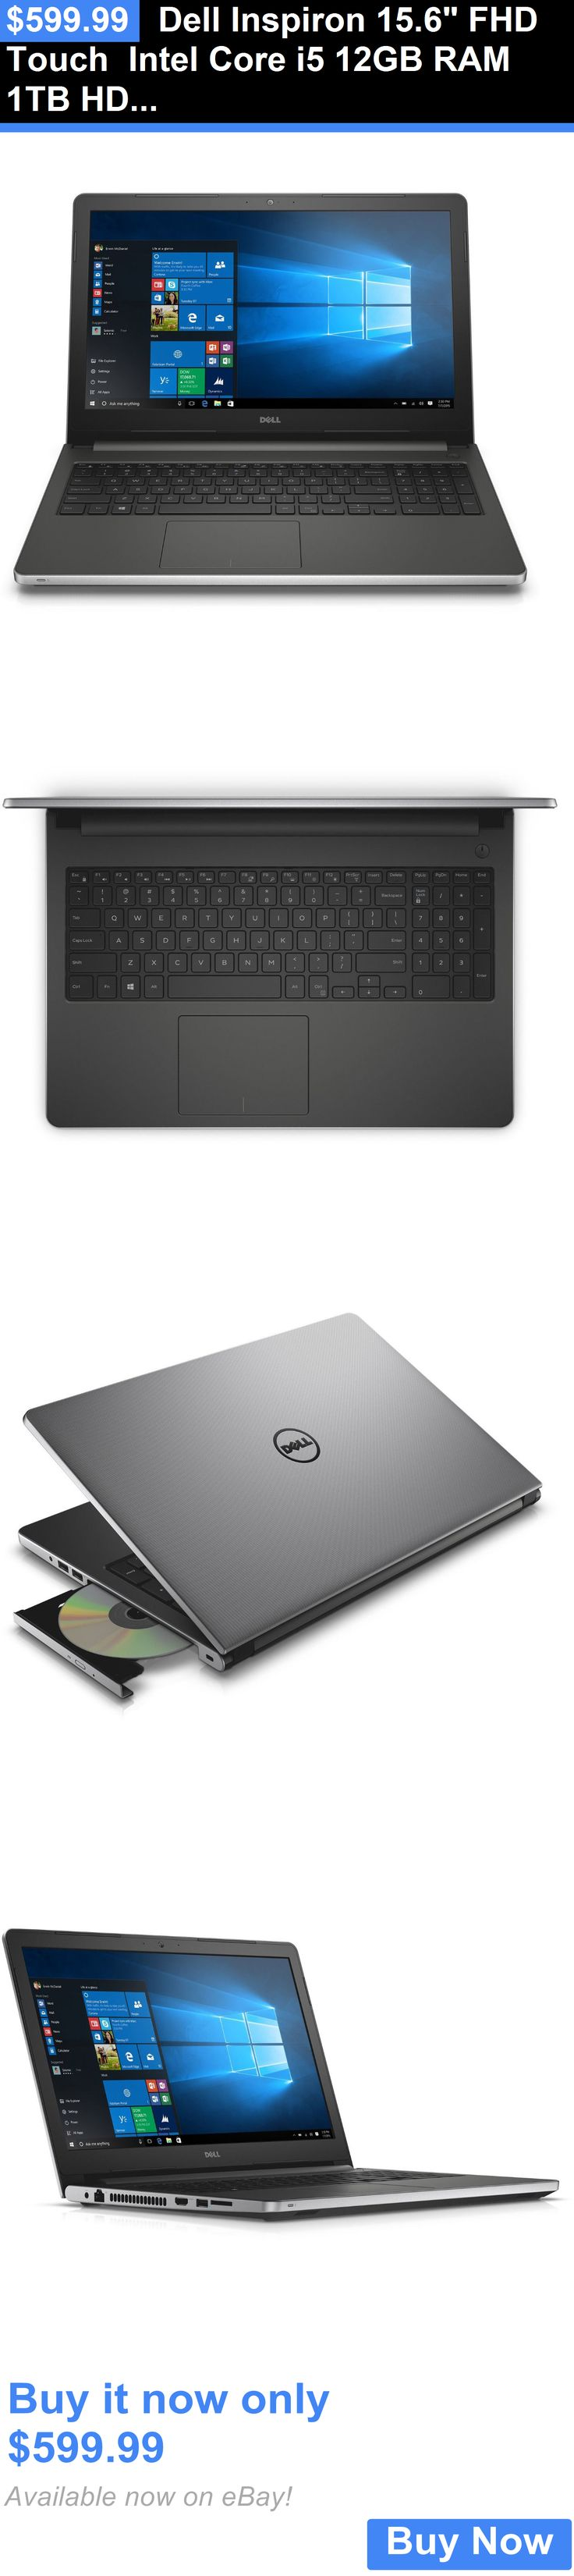 computers: Dell Inspiron 15.6 Fhd Touch Intel Core I5 12Gb Ram 1Tb Hdd I5559-5347Slv BUY IT NOW ONLY: $599.99